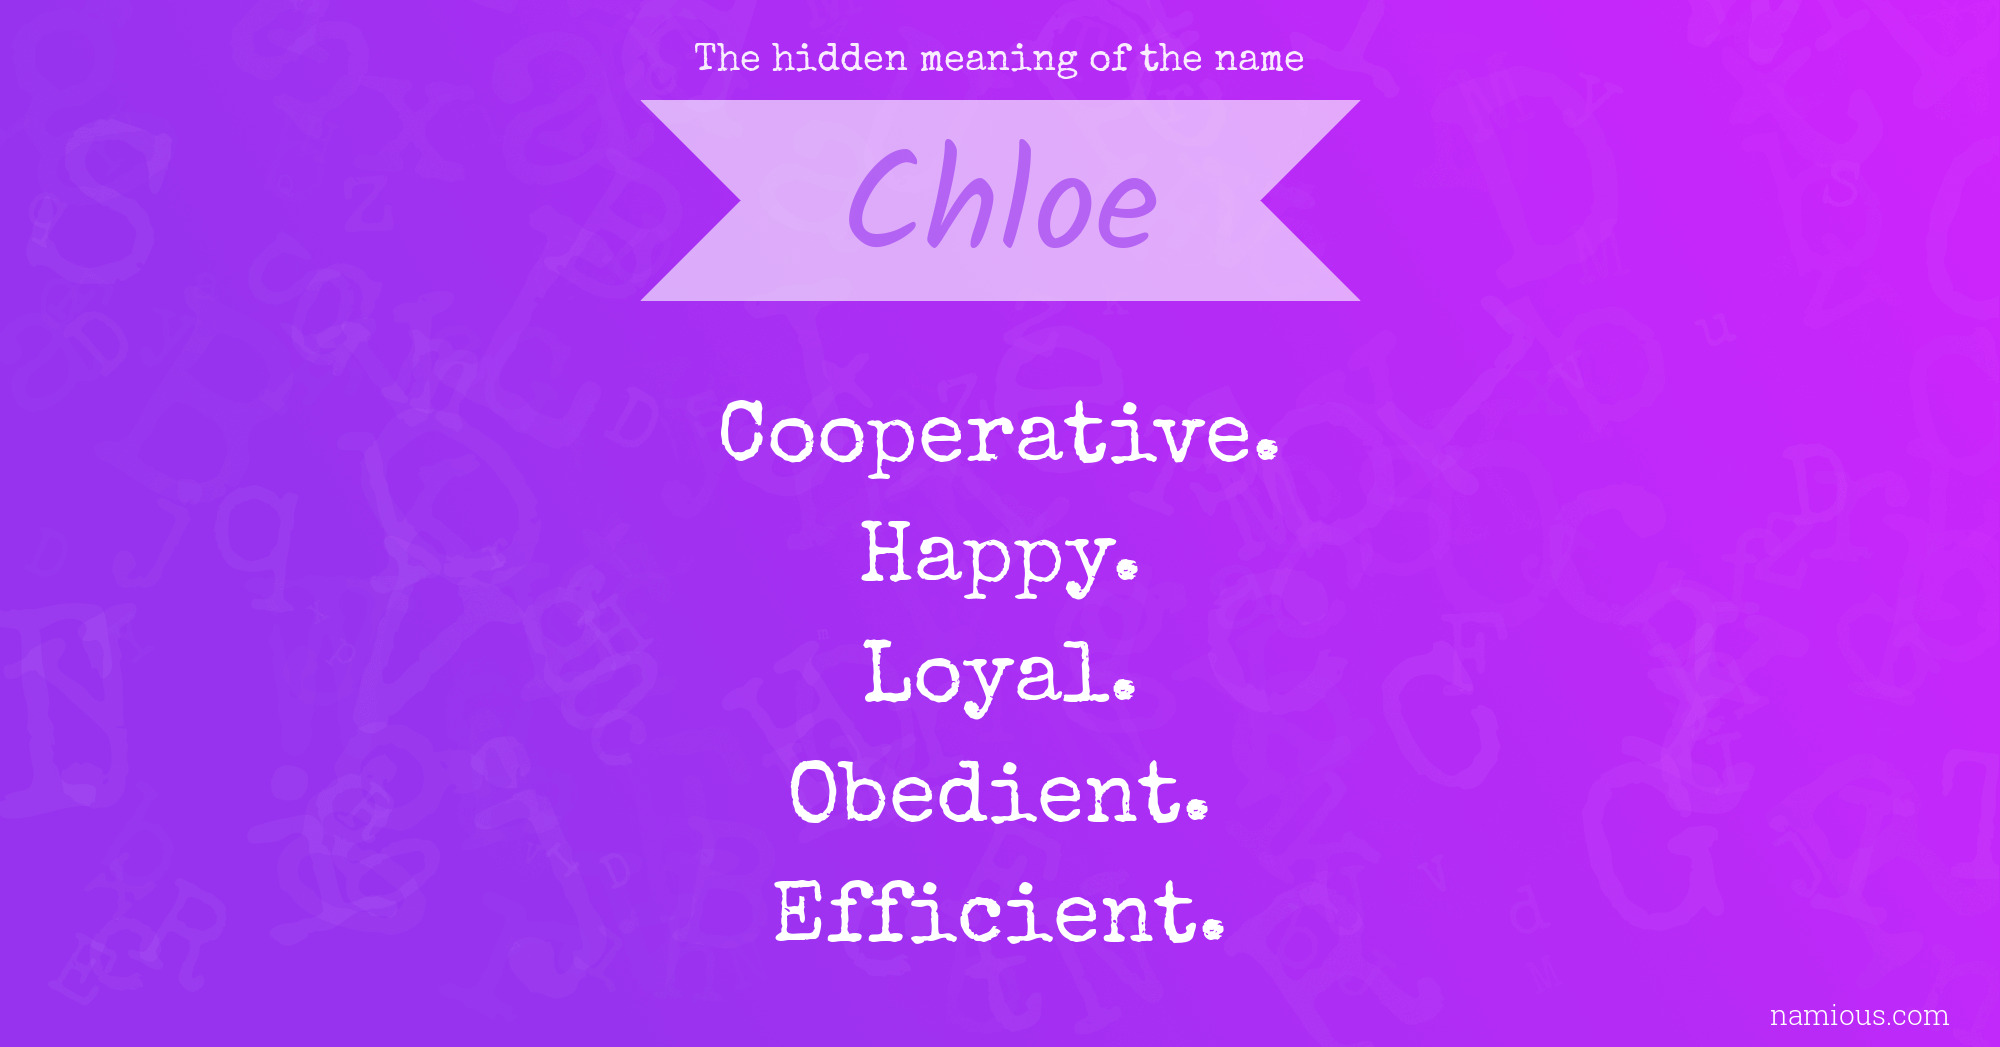 The hidden meaning of the name Chloe | Namious